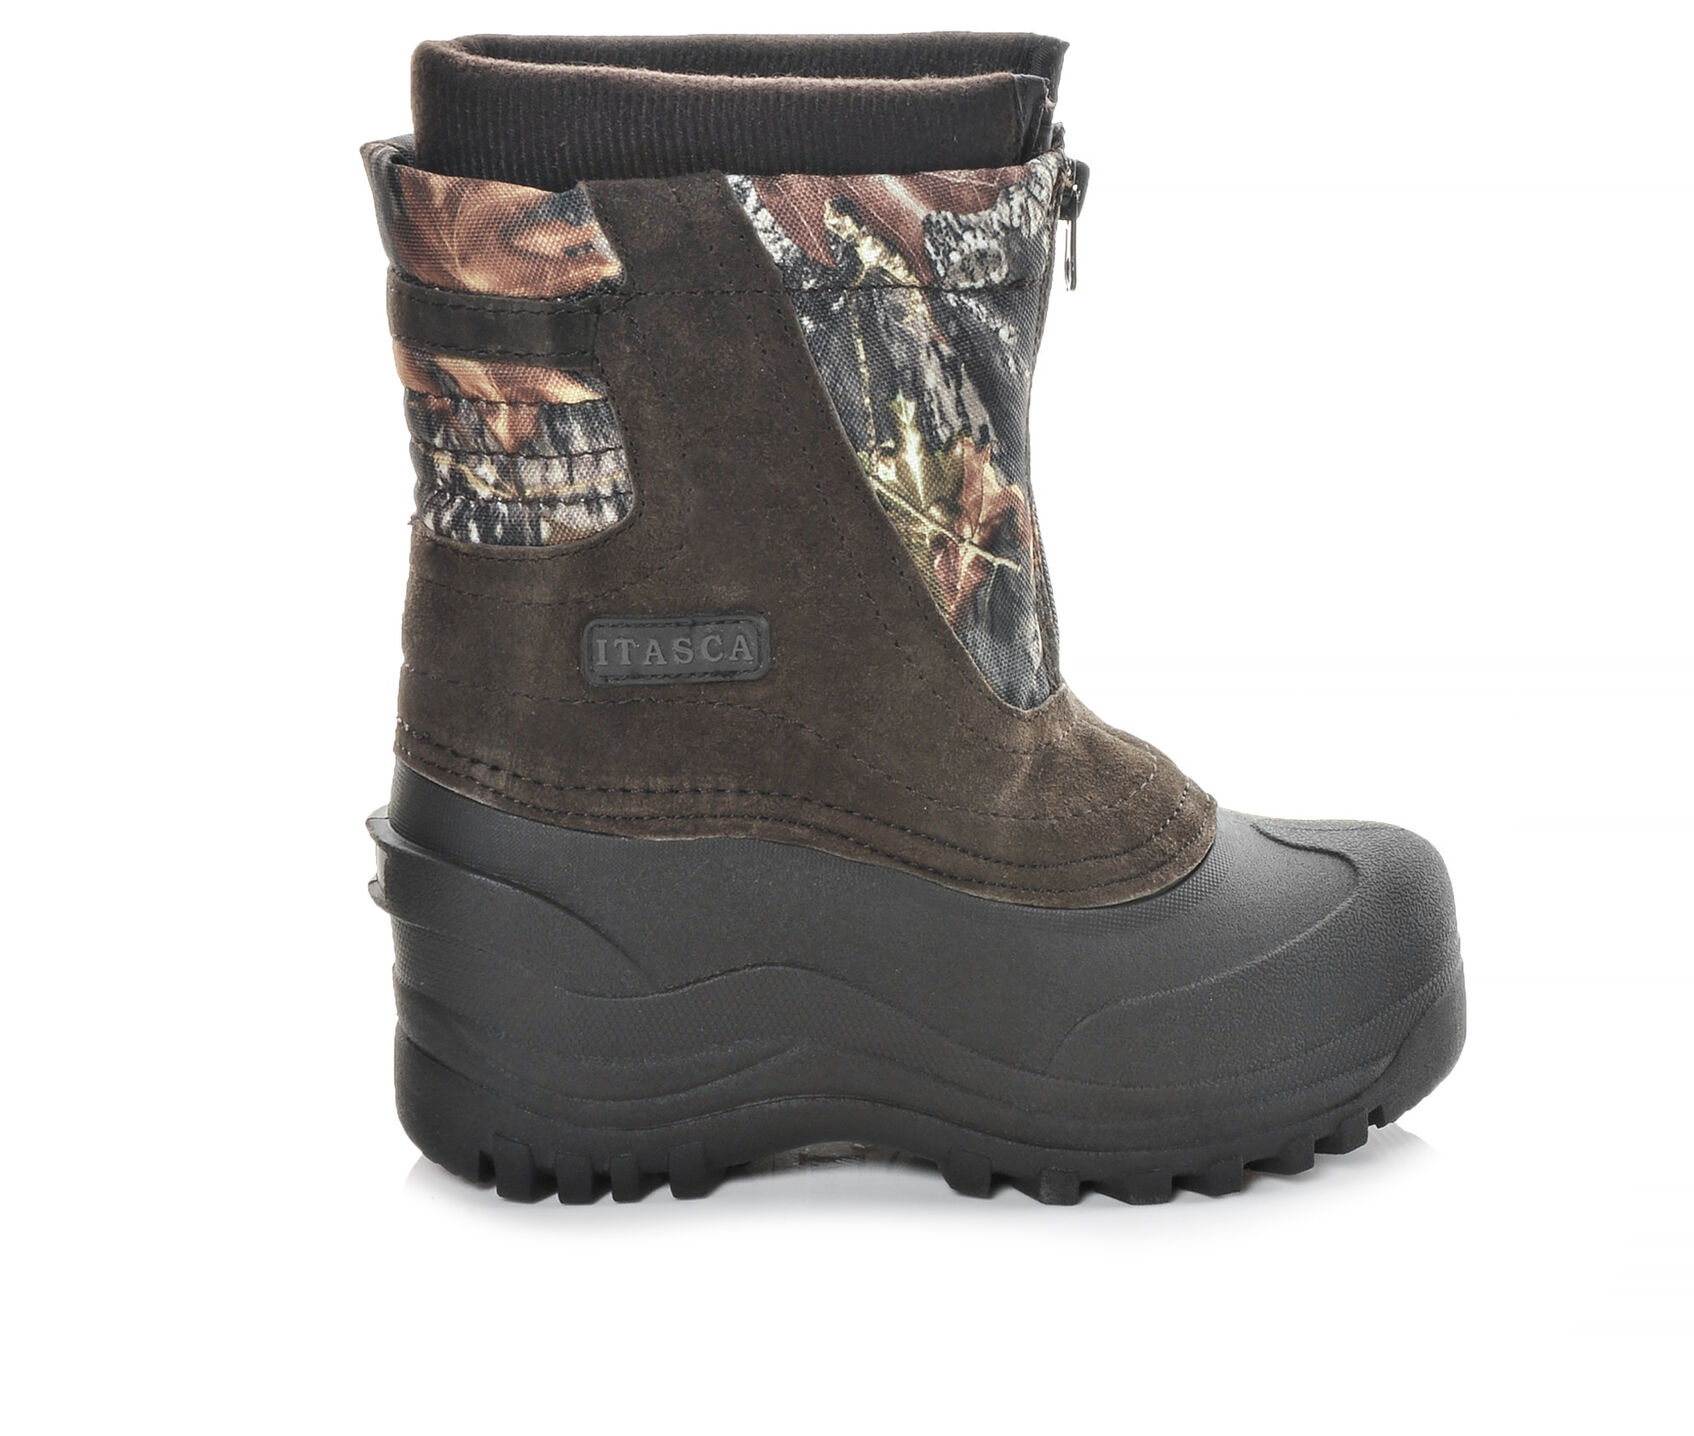 new concept d1738 3d0d1 Boys' Itasca Sonoma Little Kid & Big Kid Snow Stomper Camo Winter Boots